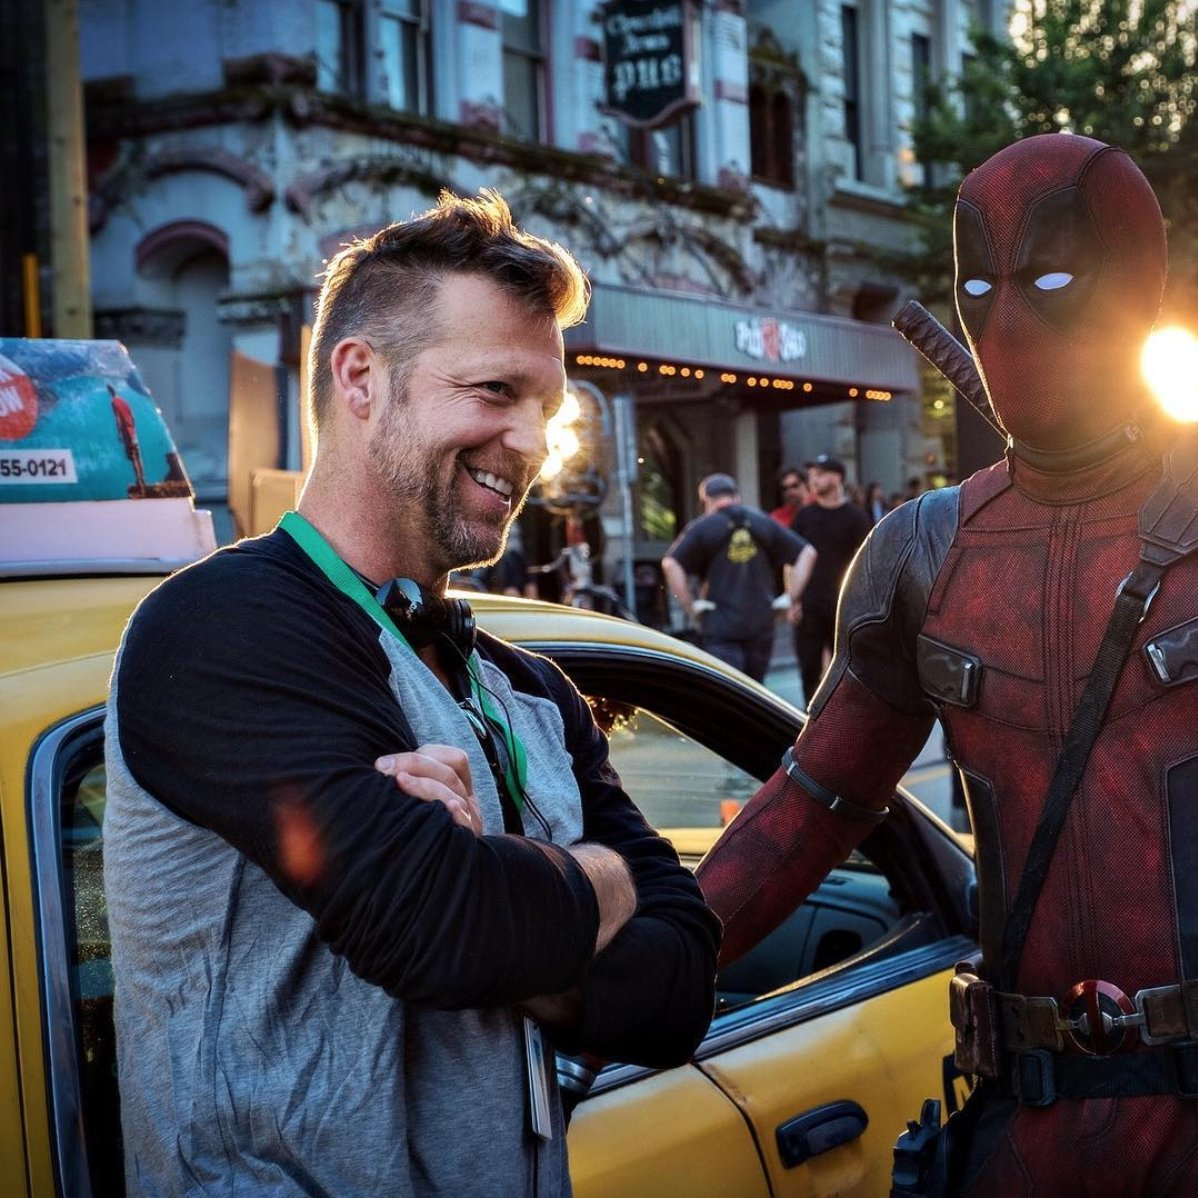 .@VancityReynolds says that&#39;s a wrap on #DeadPool2. June 2018 can&#39;t come soon enough! <br>http://pic.twitter.com/jWuRQmmkgl